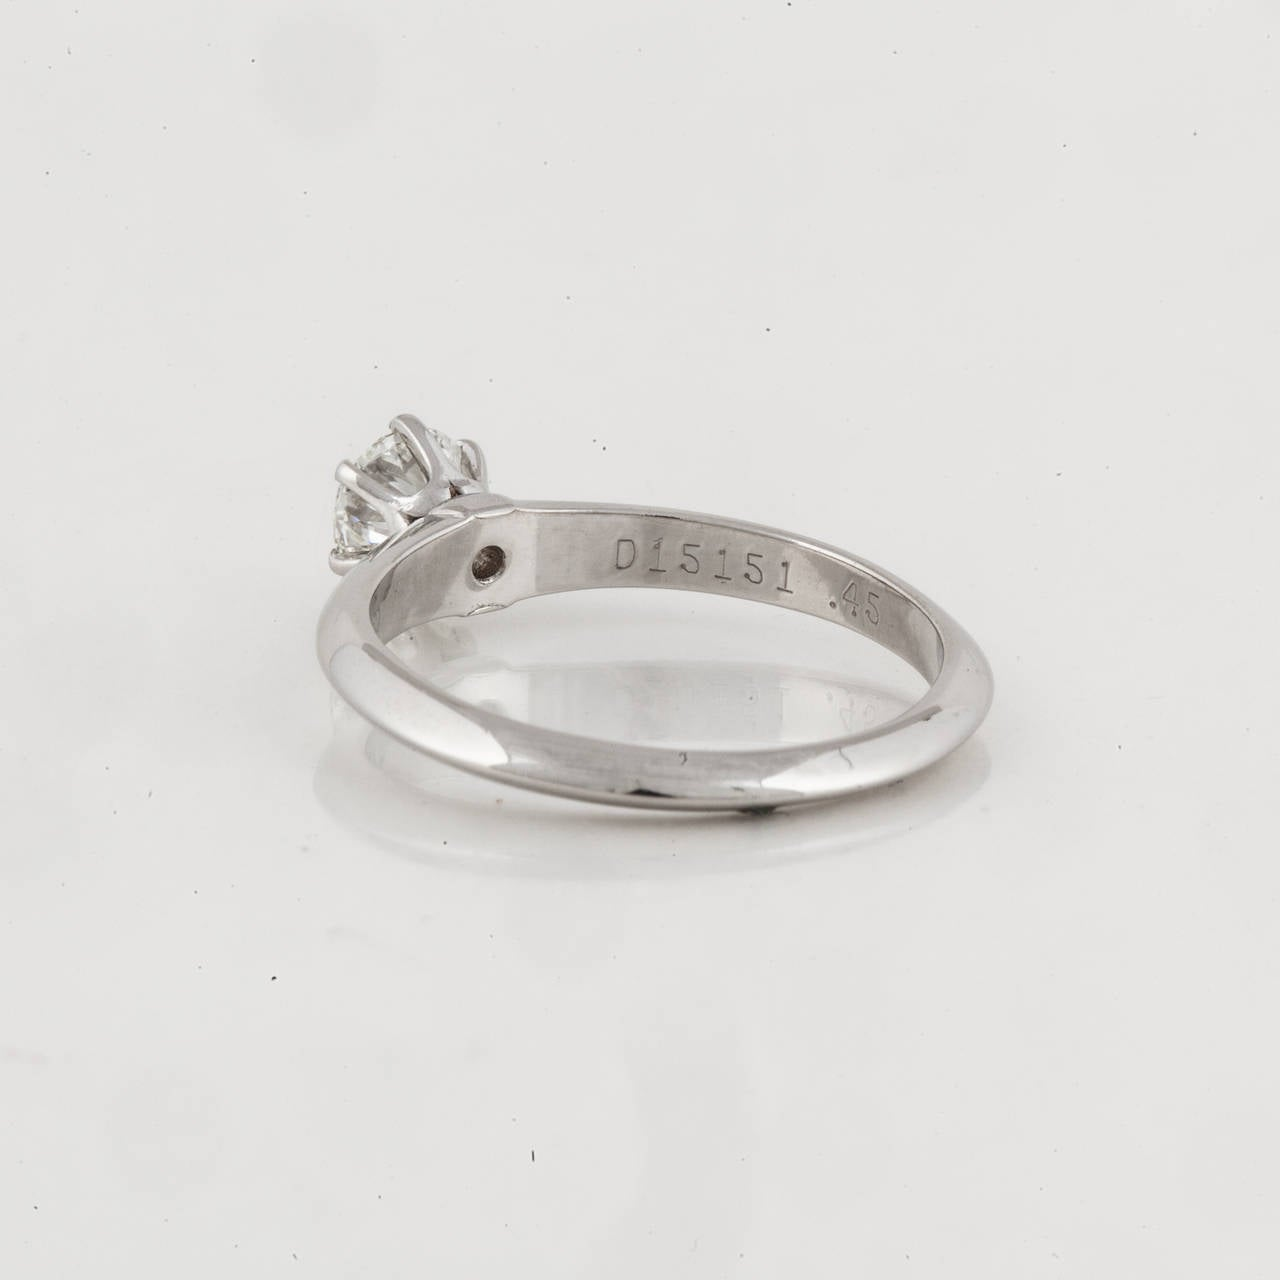 Tiffany & Co. Diamond Platinum Solitare Ring 4